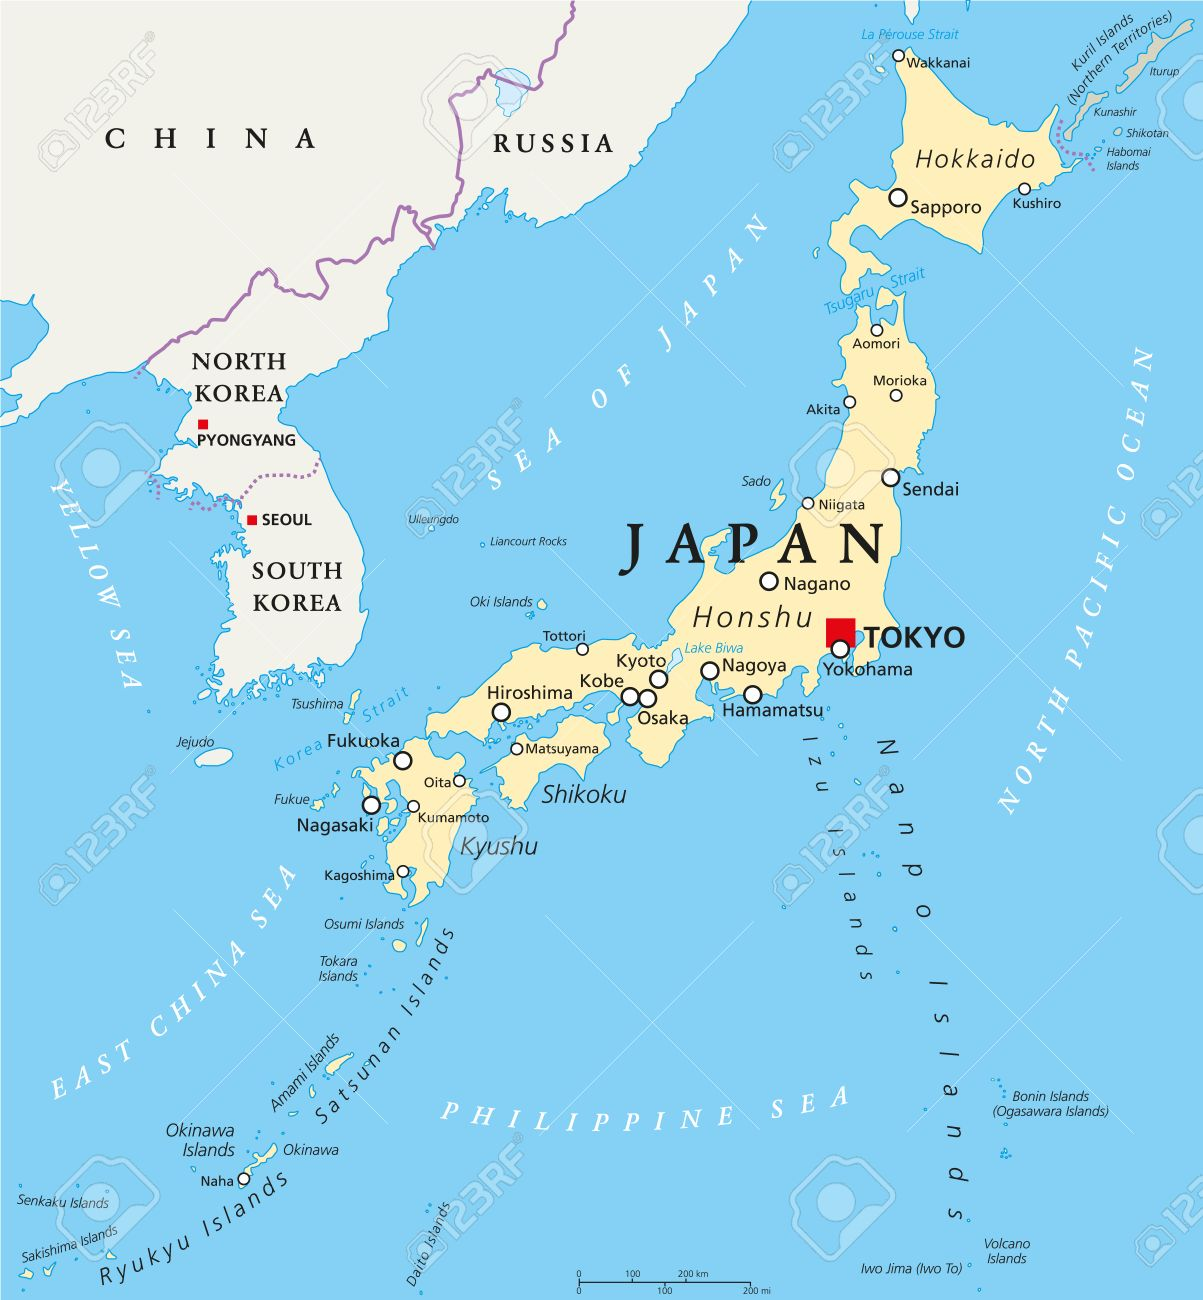 Japan Political Map With Capital Tokyo, National Borders And